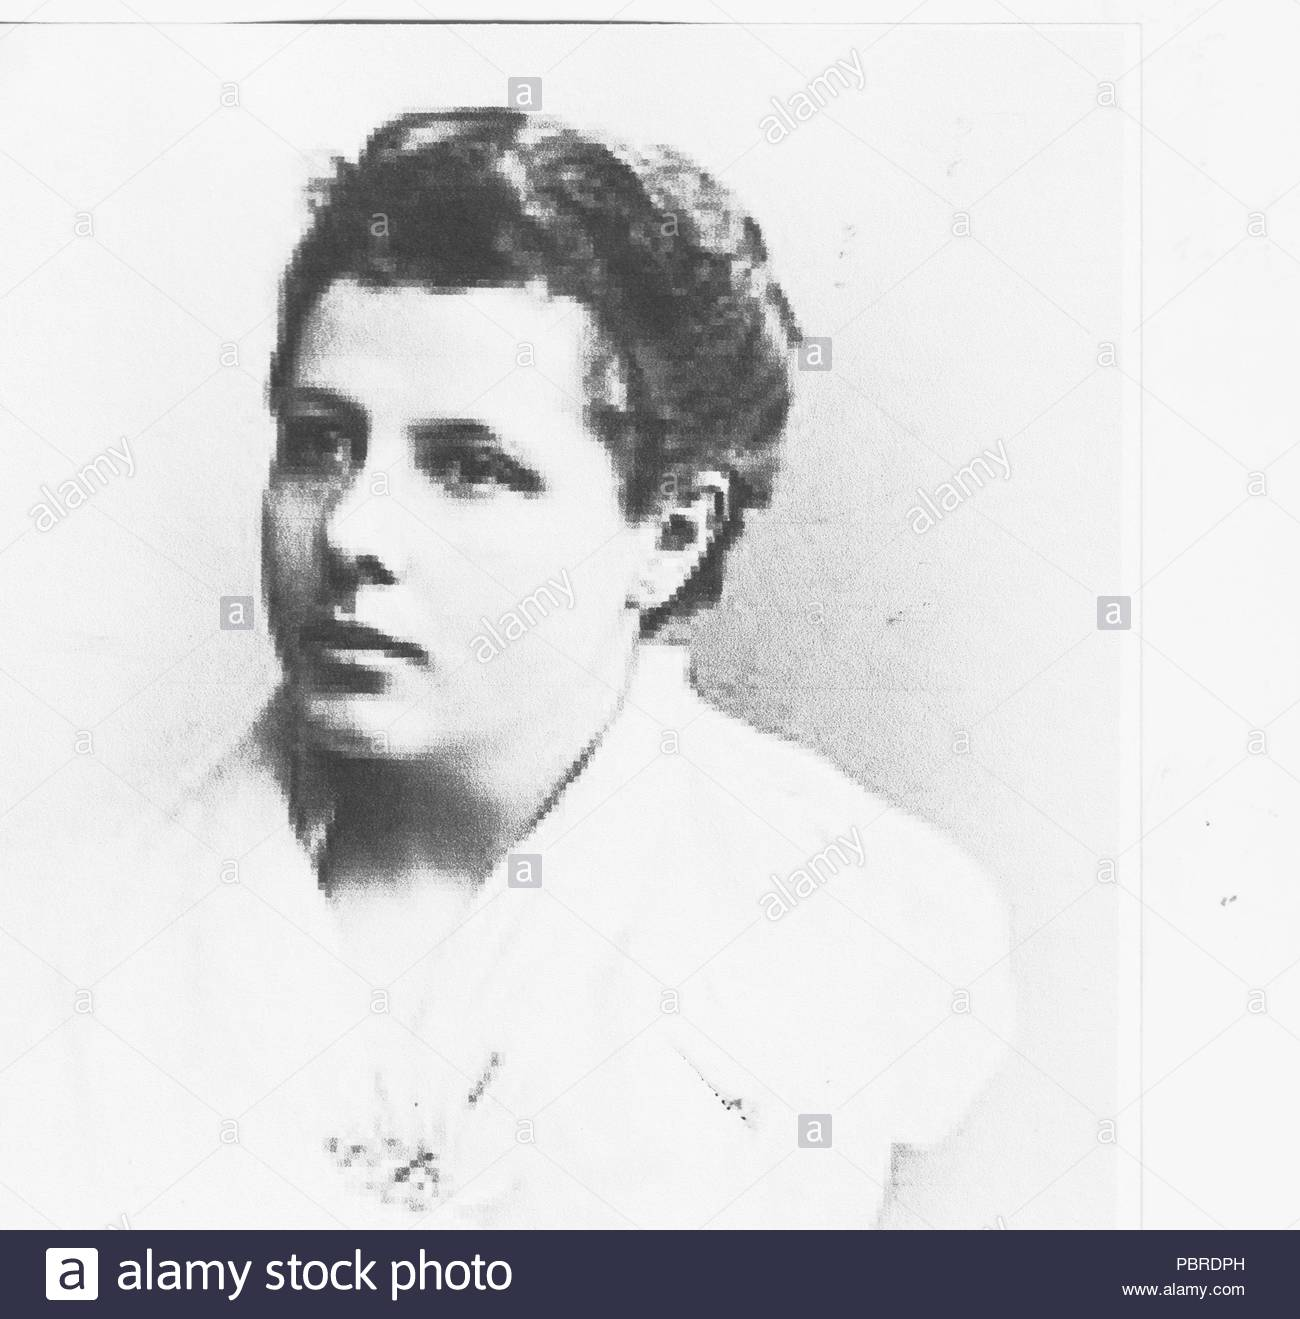 Annie Besant (1 October 1847 – 20 September 1933) was a British socialist, theosophist, women's rights activist, writer and orator and supporter of Irish and Indian self-rule. She became involved in politics in India, joining the Indian National Congress. When World War I broke out in 1914, she helped launch the Home Rule League to campaign for democracy in India and dominion status within the Empire. - Stock Image